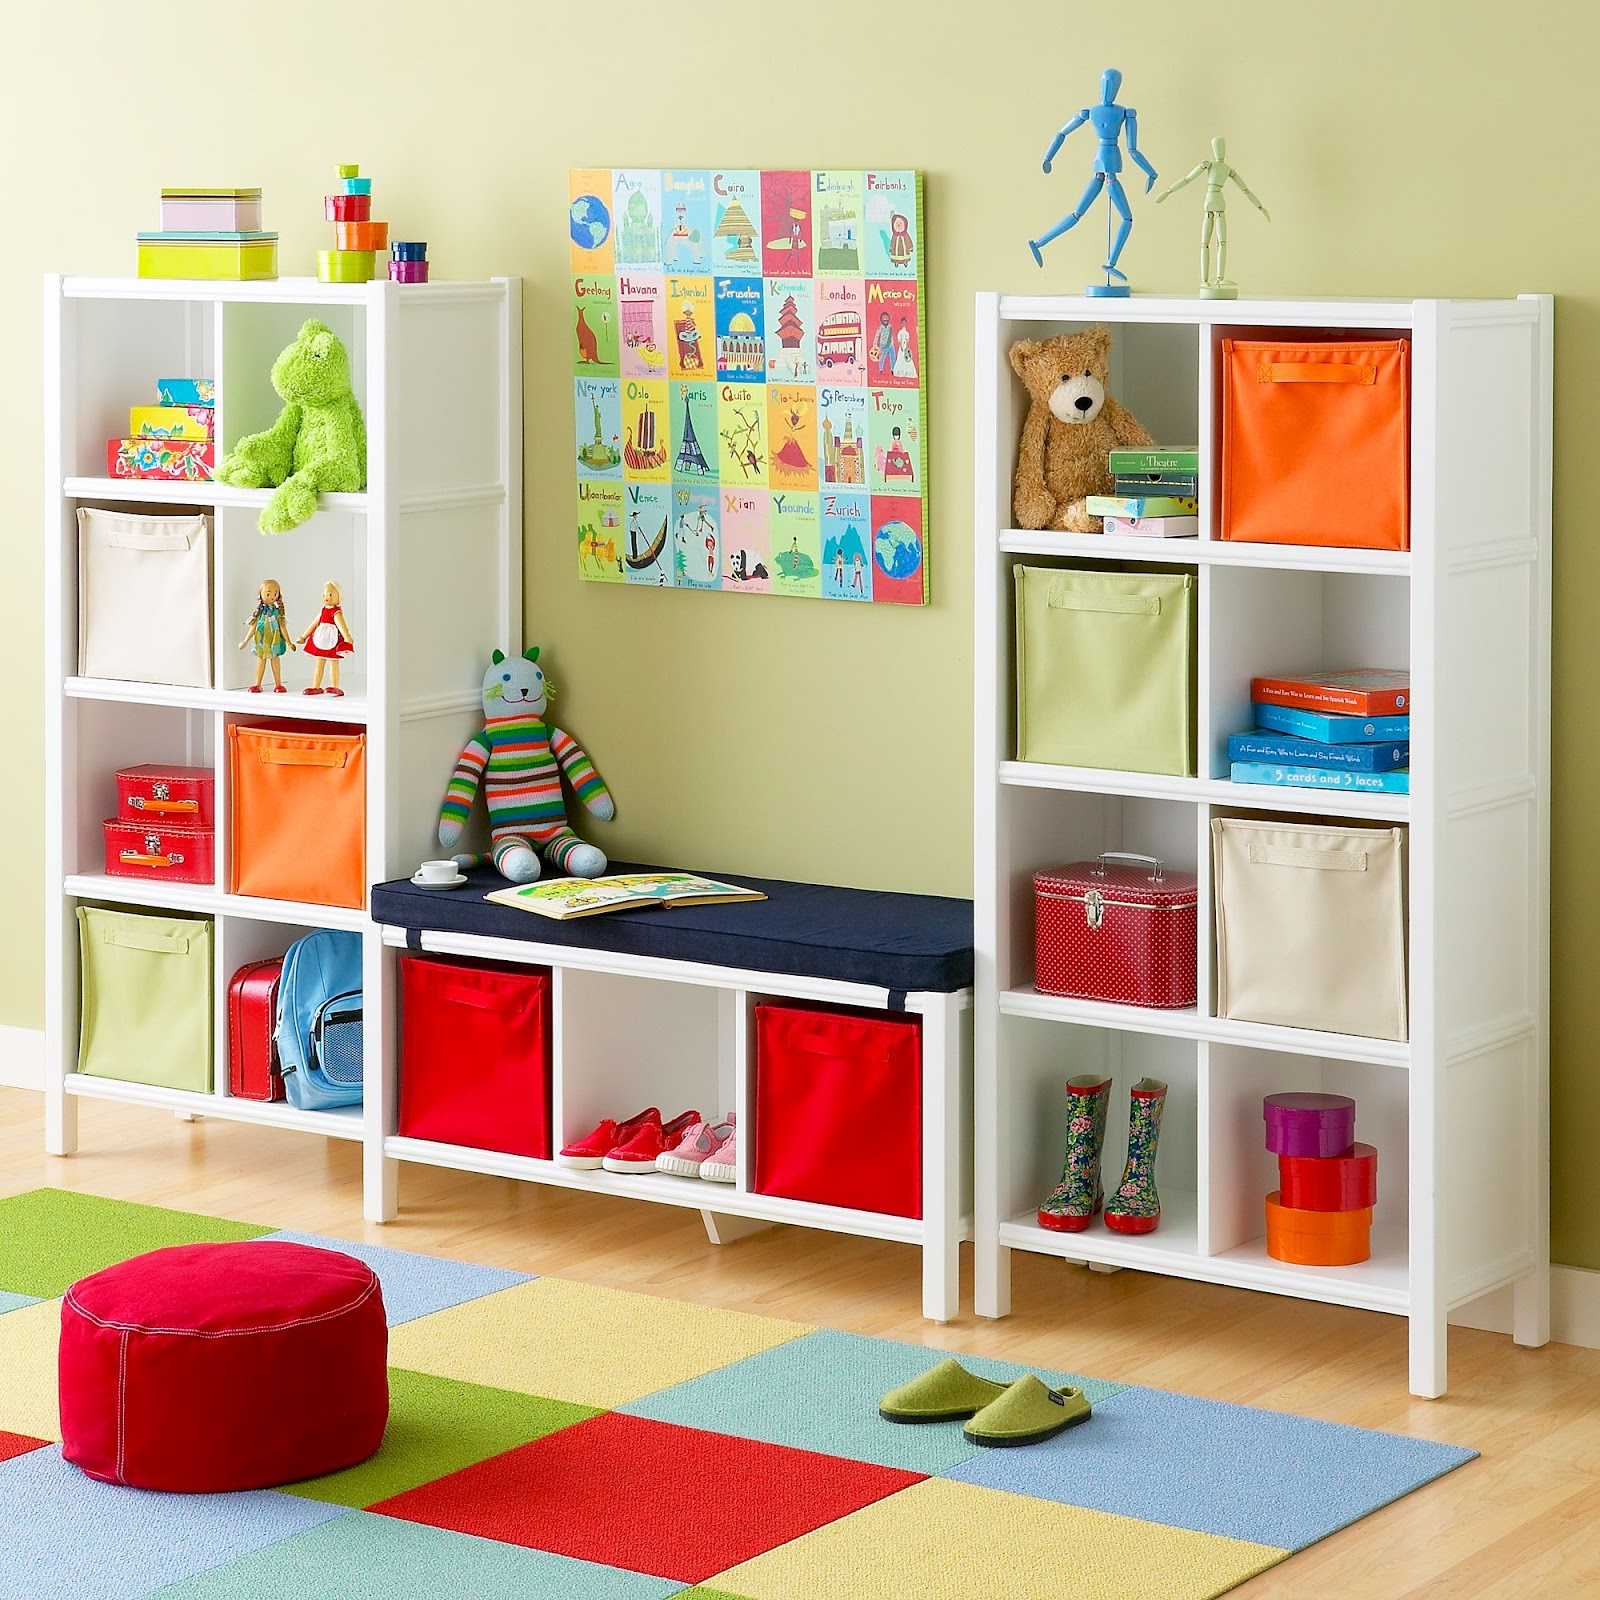 Childrens Play Room Enchanting Kids Playroom Designs & Ideas Inspiration Design